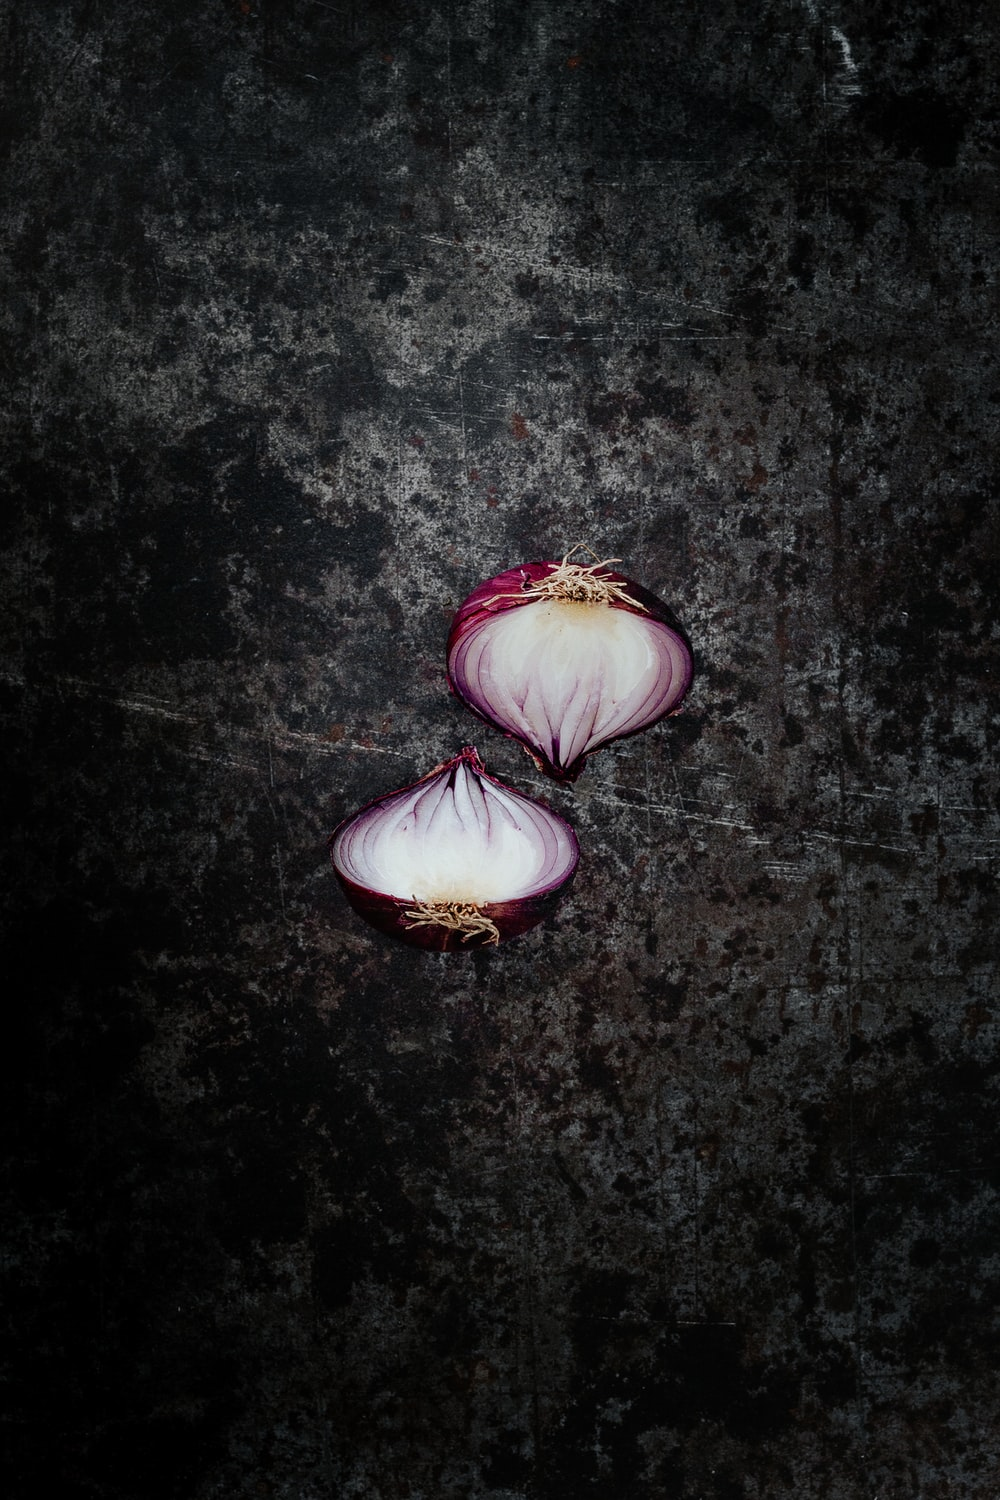 purple and white flower on black surface